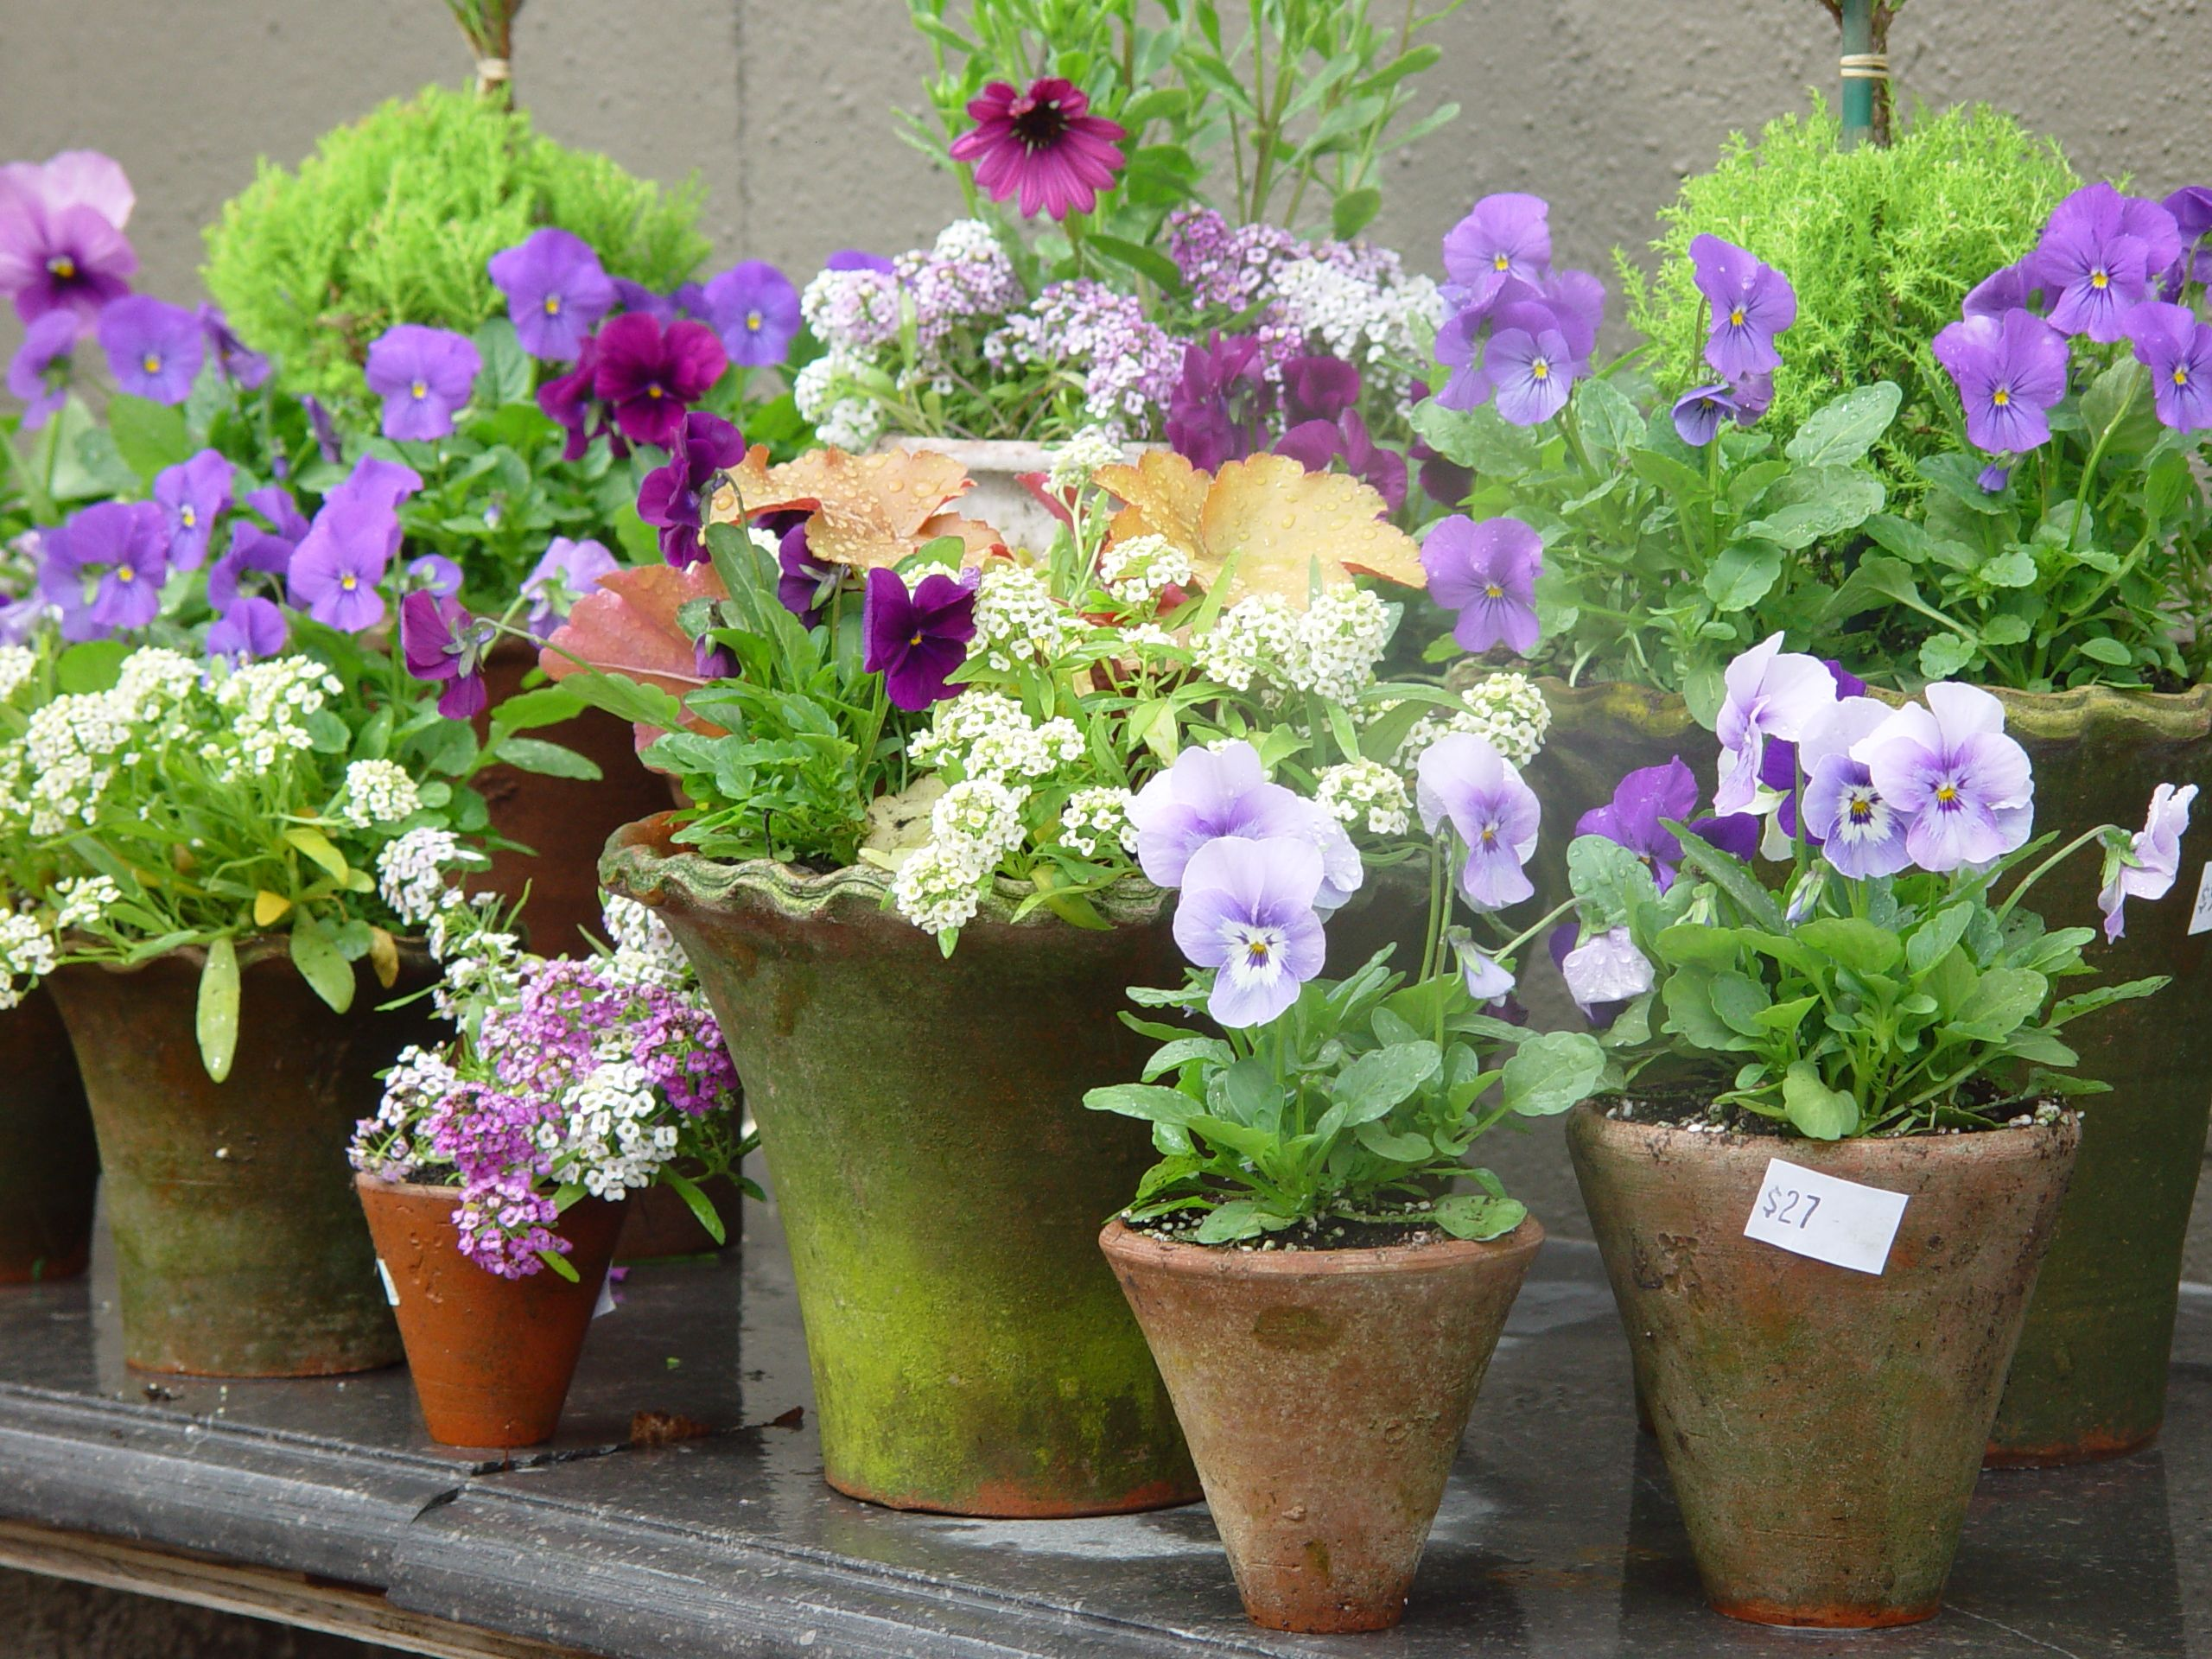 Photo of flowers in a pots